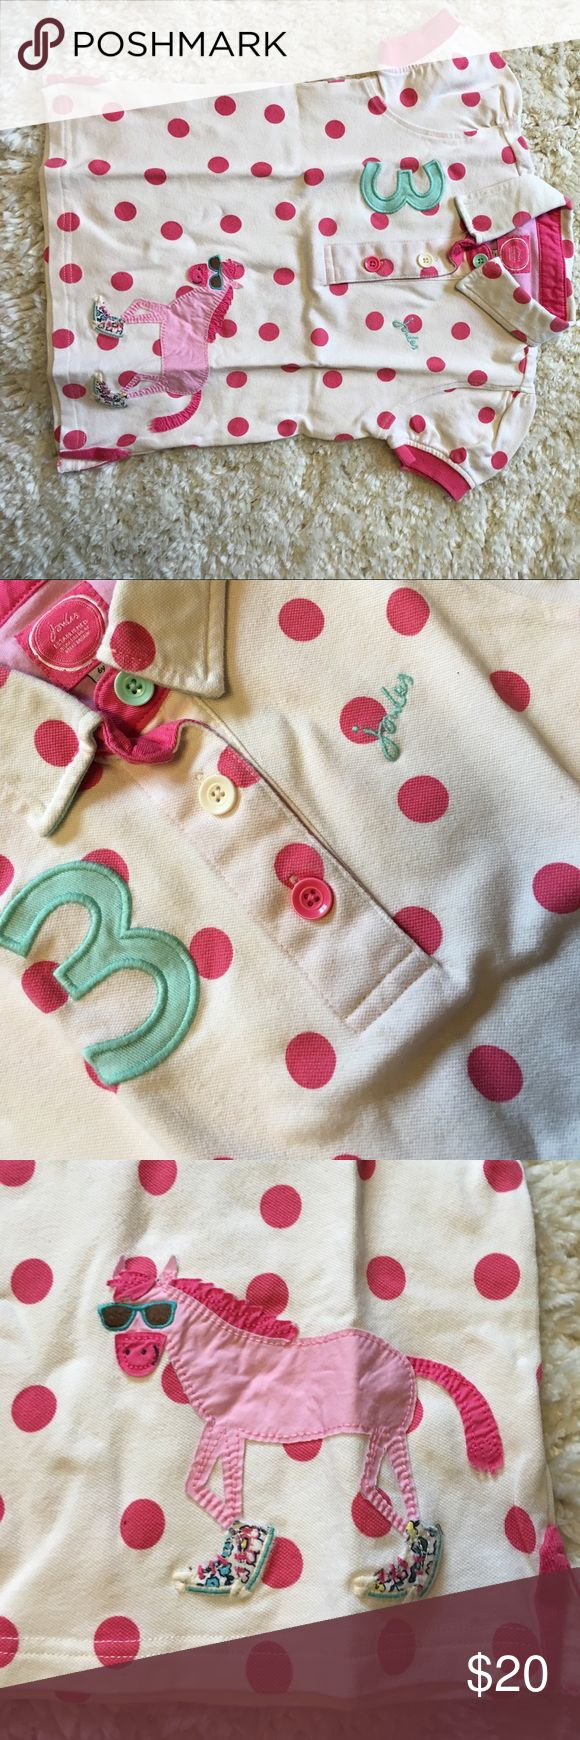 Joules Polo Shirt Girls-6 Isn't this darling? This Joules Girls polo, size 6, is a short sleeve with 3 buttons (different colors), a cream color with pink accents and Polka dots, a 3 patch, embroidered joules, and a Zebra patch on the bottom. Soo cute! Great condition. Joules Shirts & Tops Polos